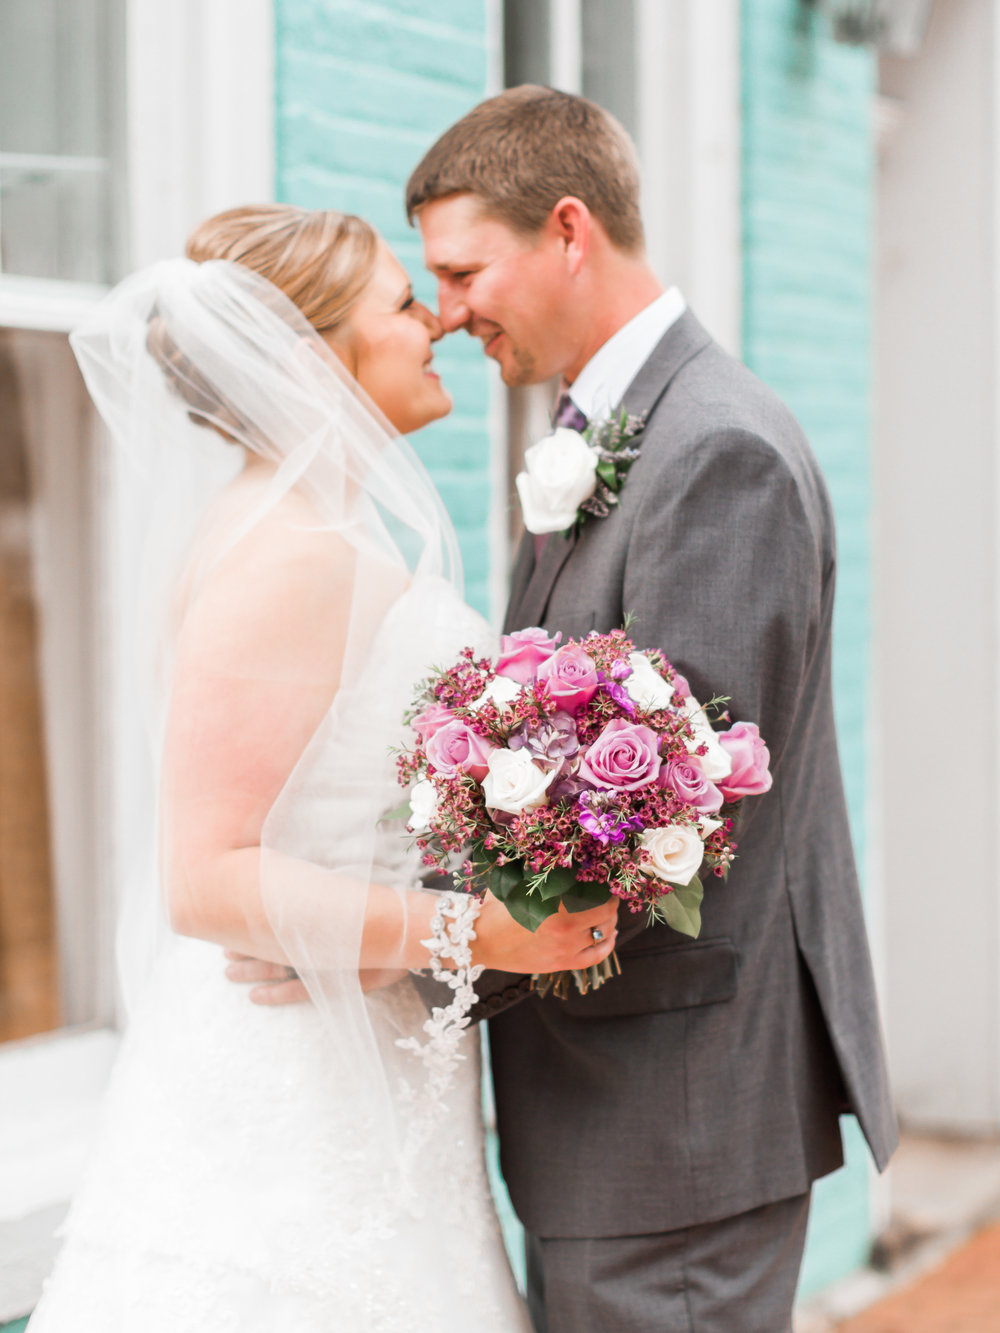 Fredericksburg Square Wedding | Andrea Rodway Photography-7.jpg